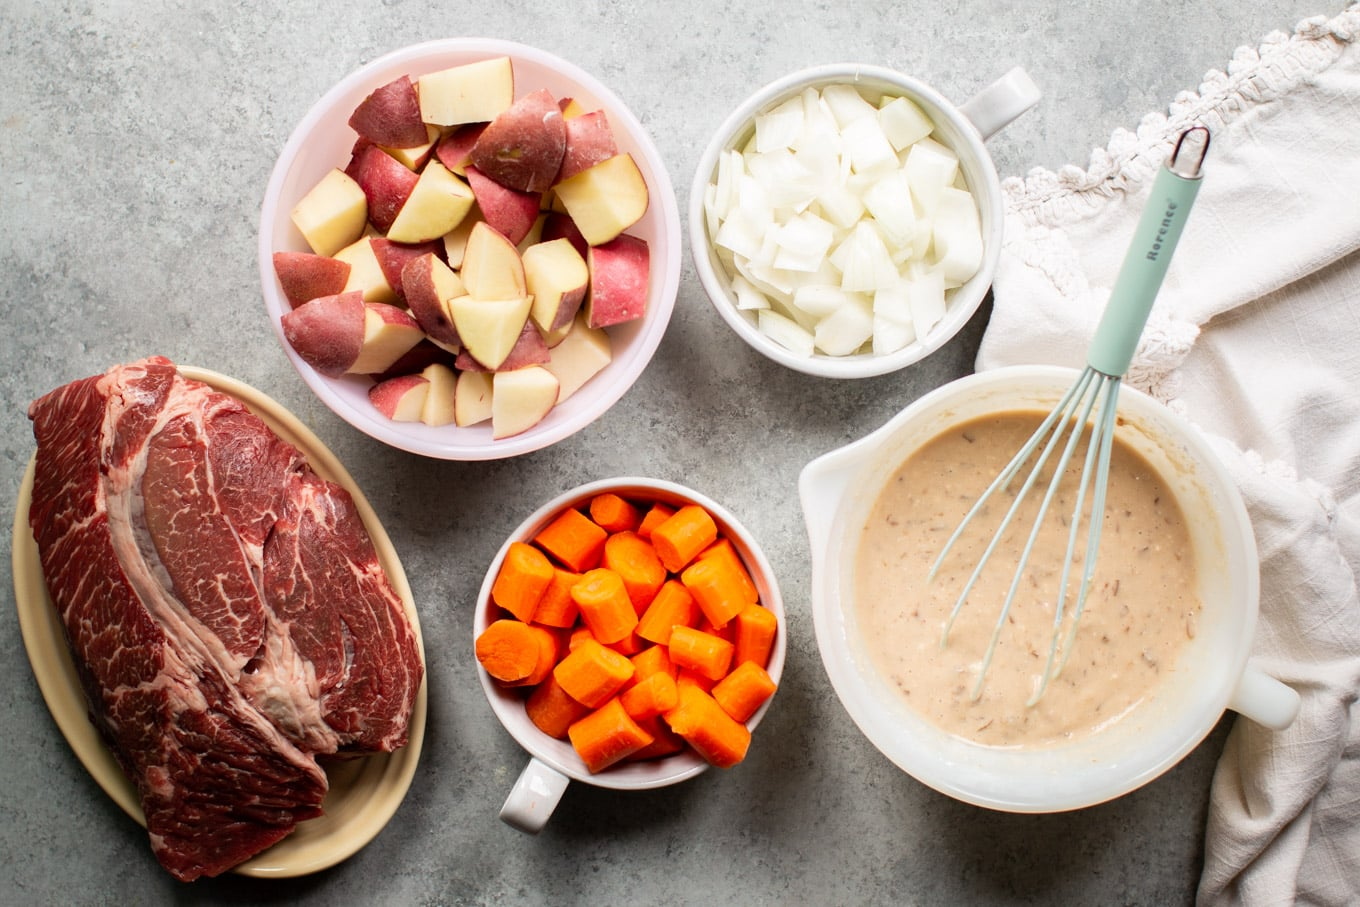 chuck roast, red potatoes, carrots, onion and gravy mixture in dishes on a table.